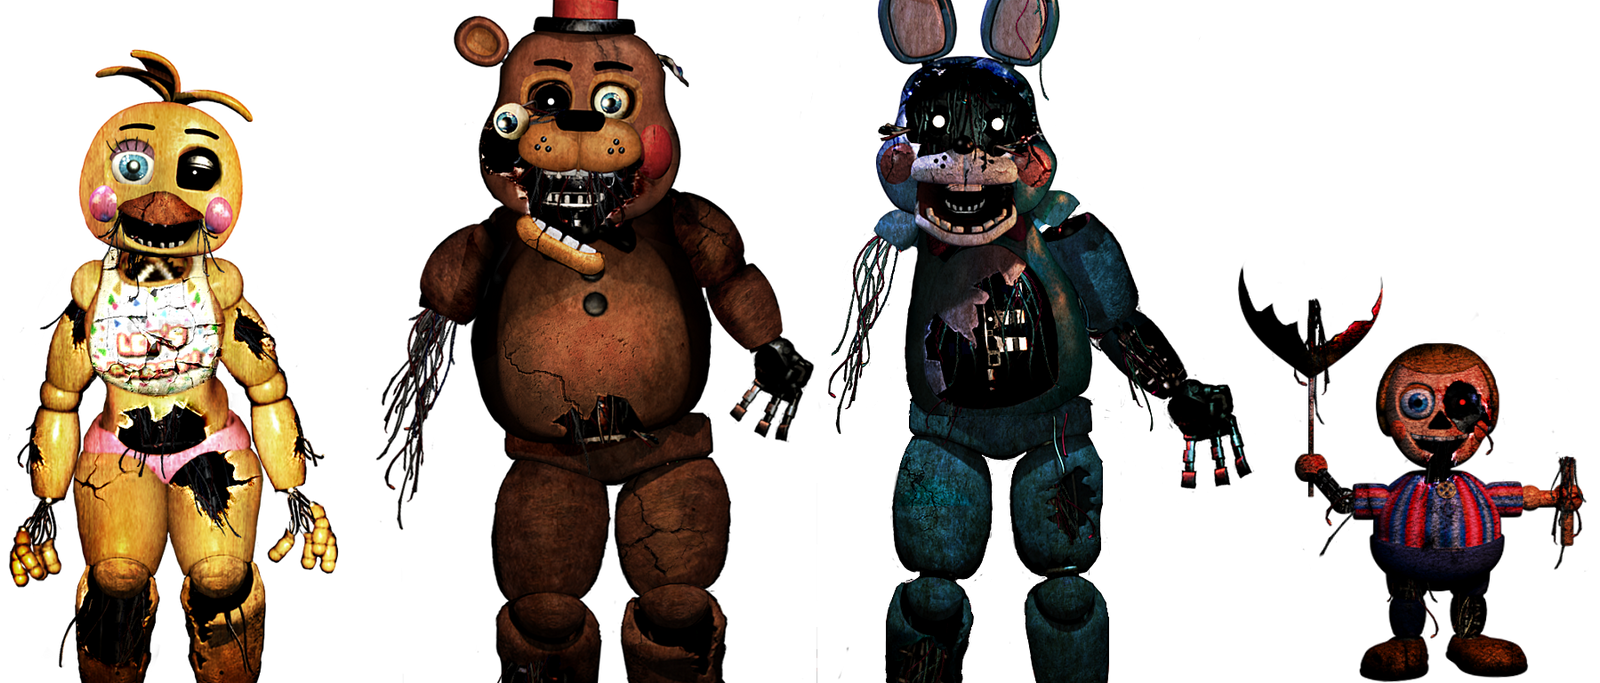 Old Freddy Toys : Five nights at freddy s withered toys by christian